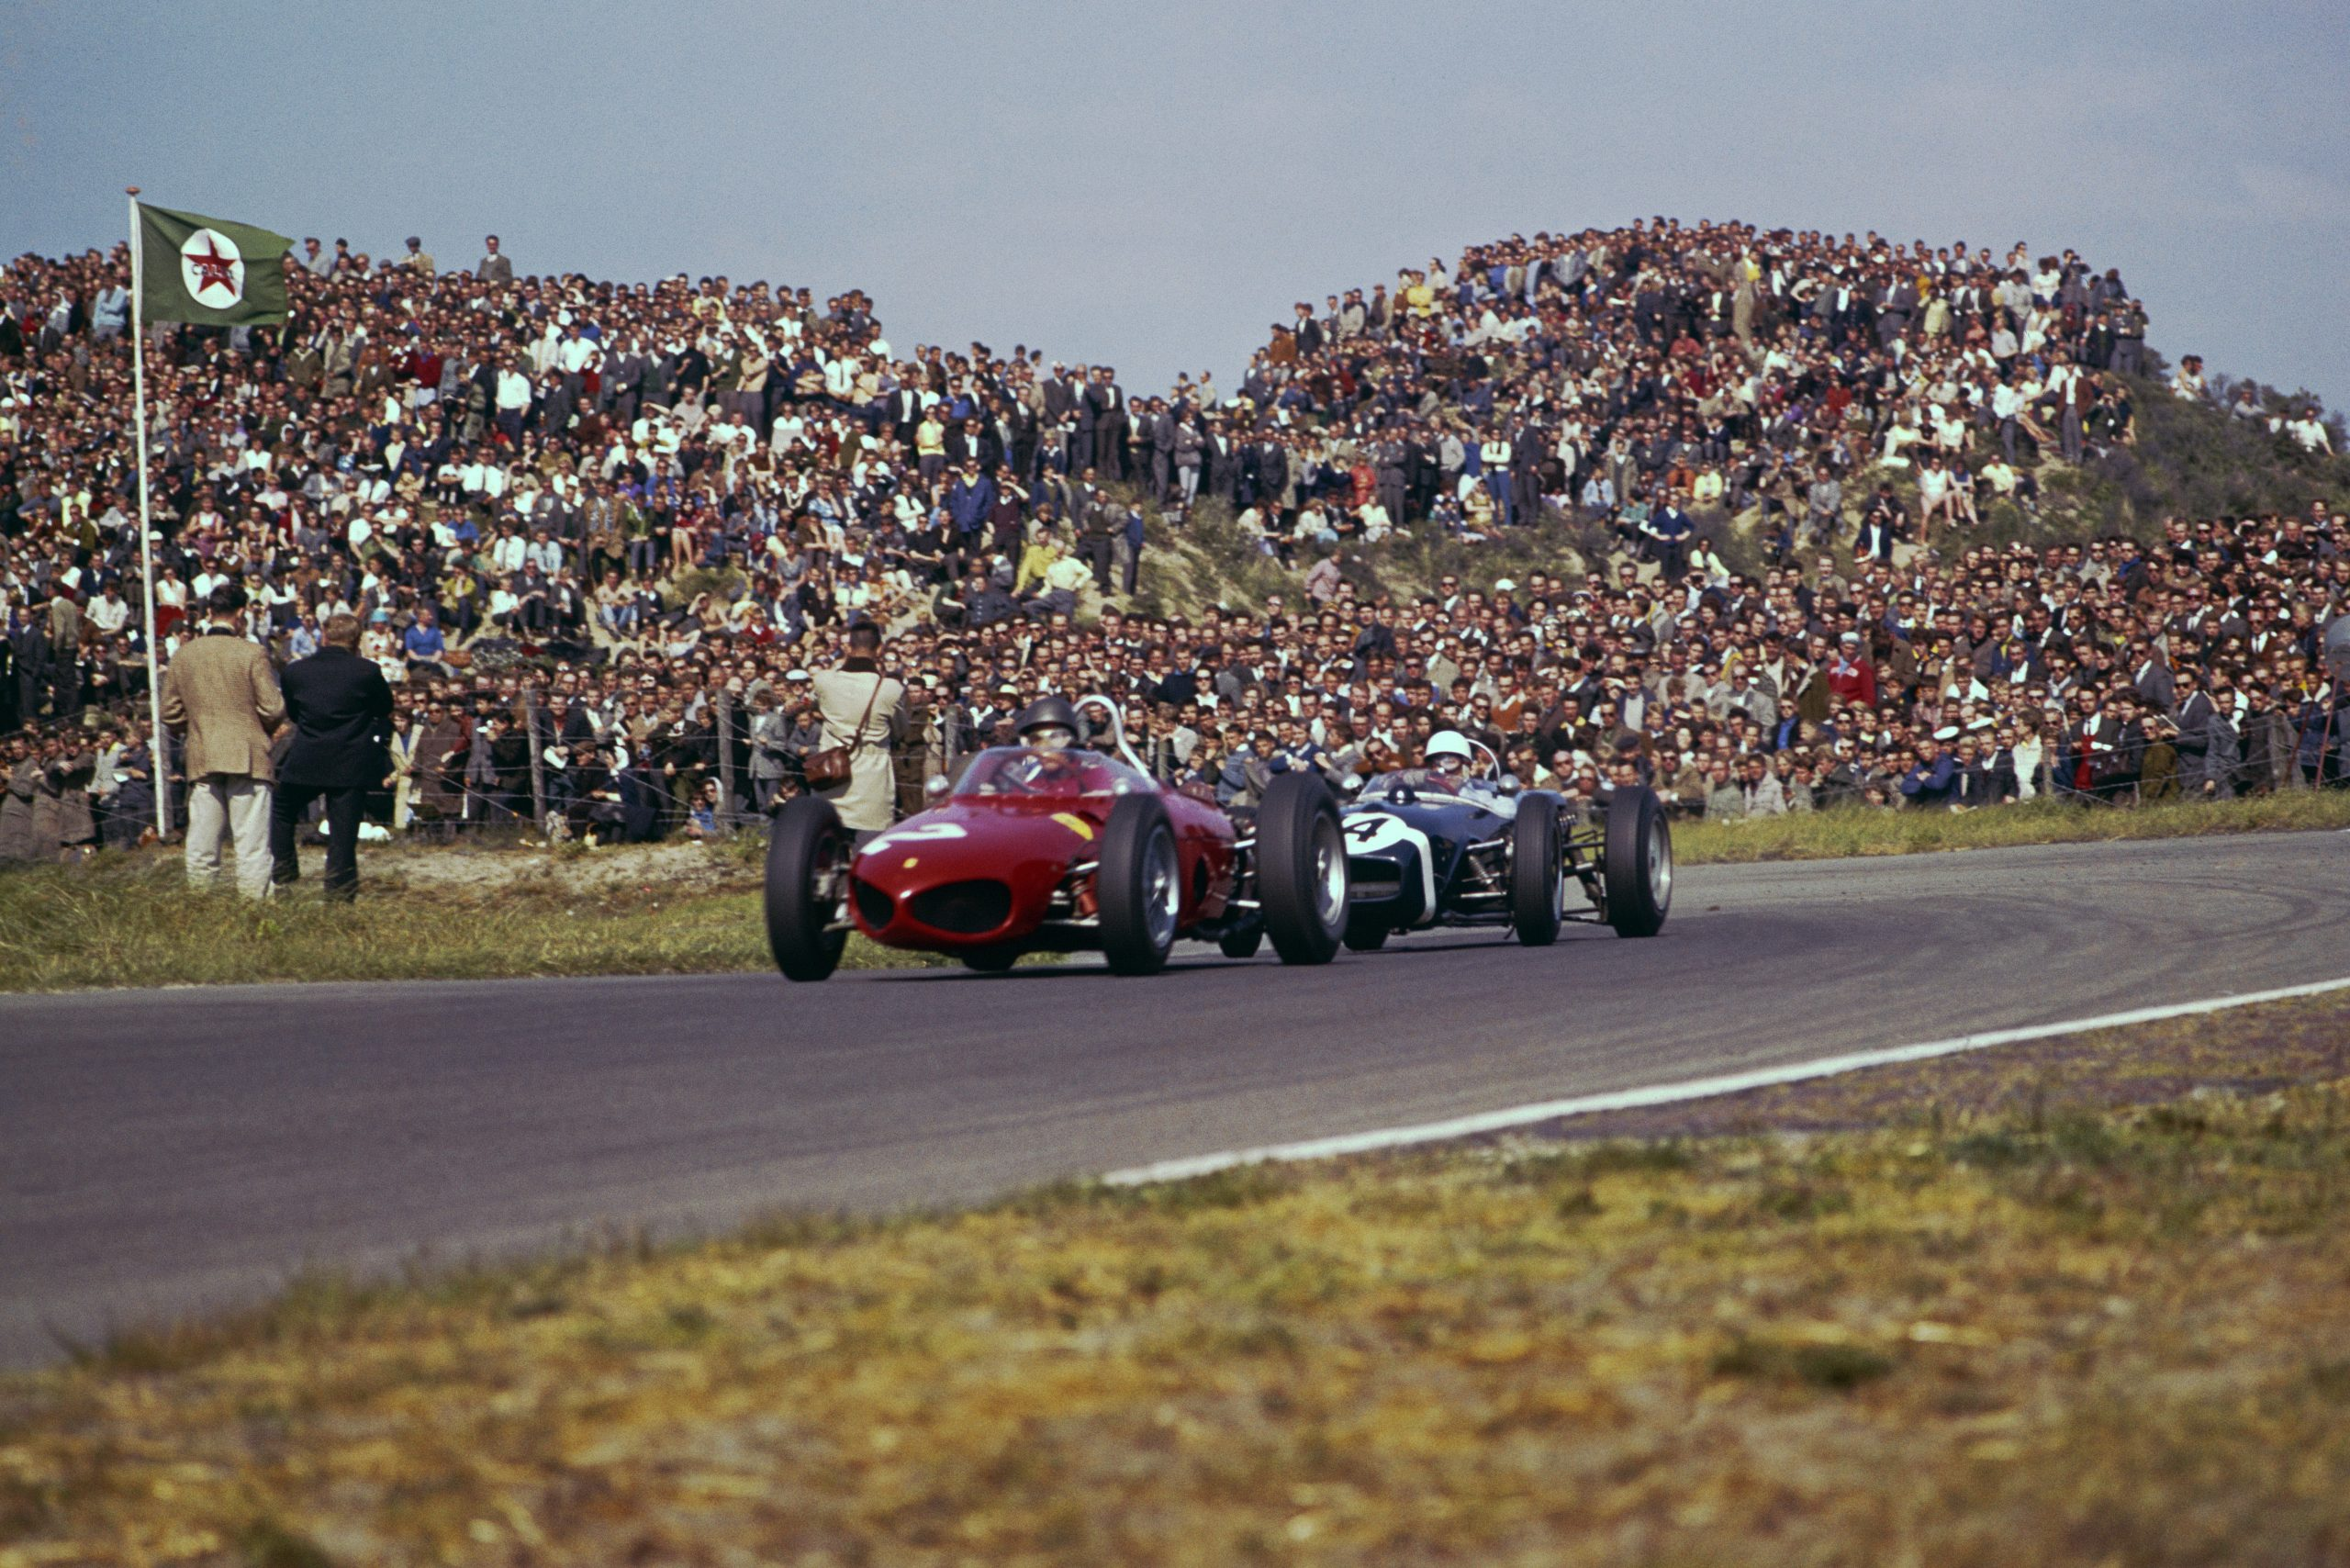 Richie Ginther in a Ferrari Dino 156) leads Stirling Moss in his Lotus 18-Climax.